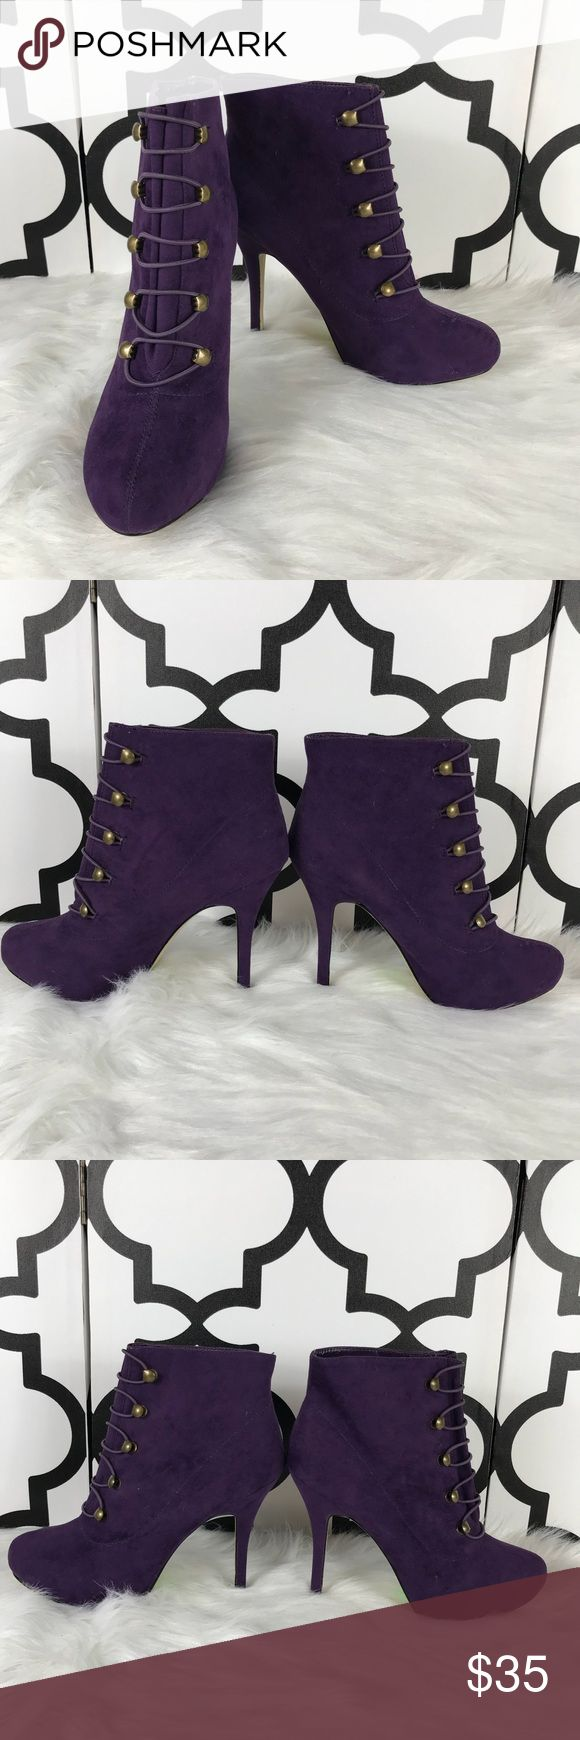 Shoe Dazzle Purple Booties Shoe Dazzle  Heeled boots   4 inch heel  Purple   8  Like New Shoe Dazzle Shoes Ankle Boots & Booties